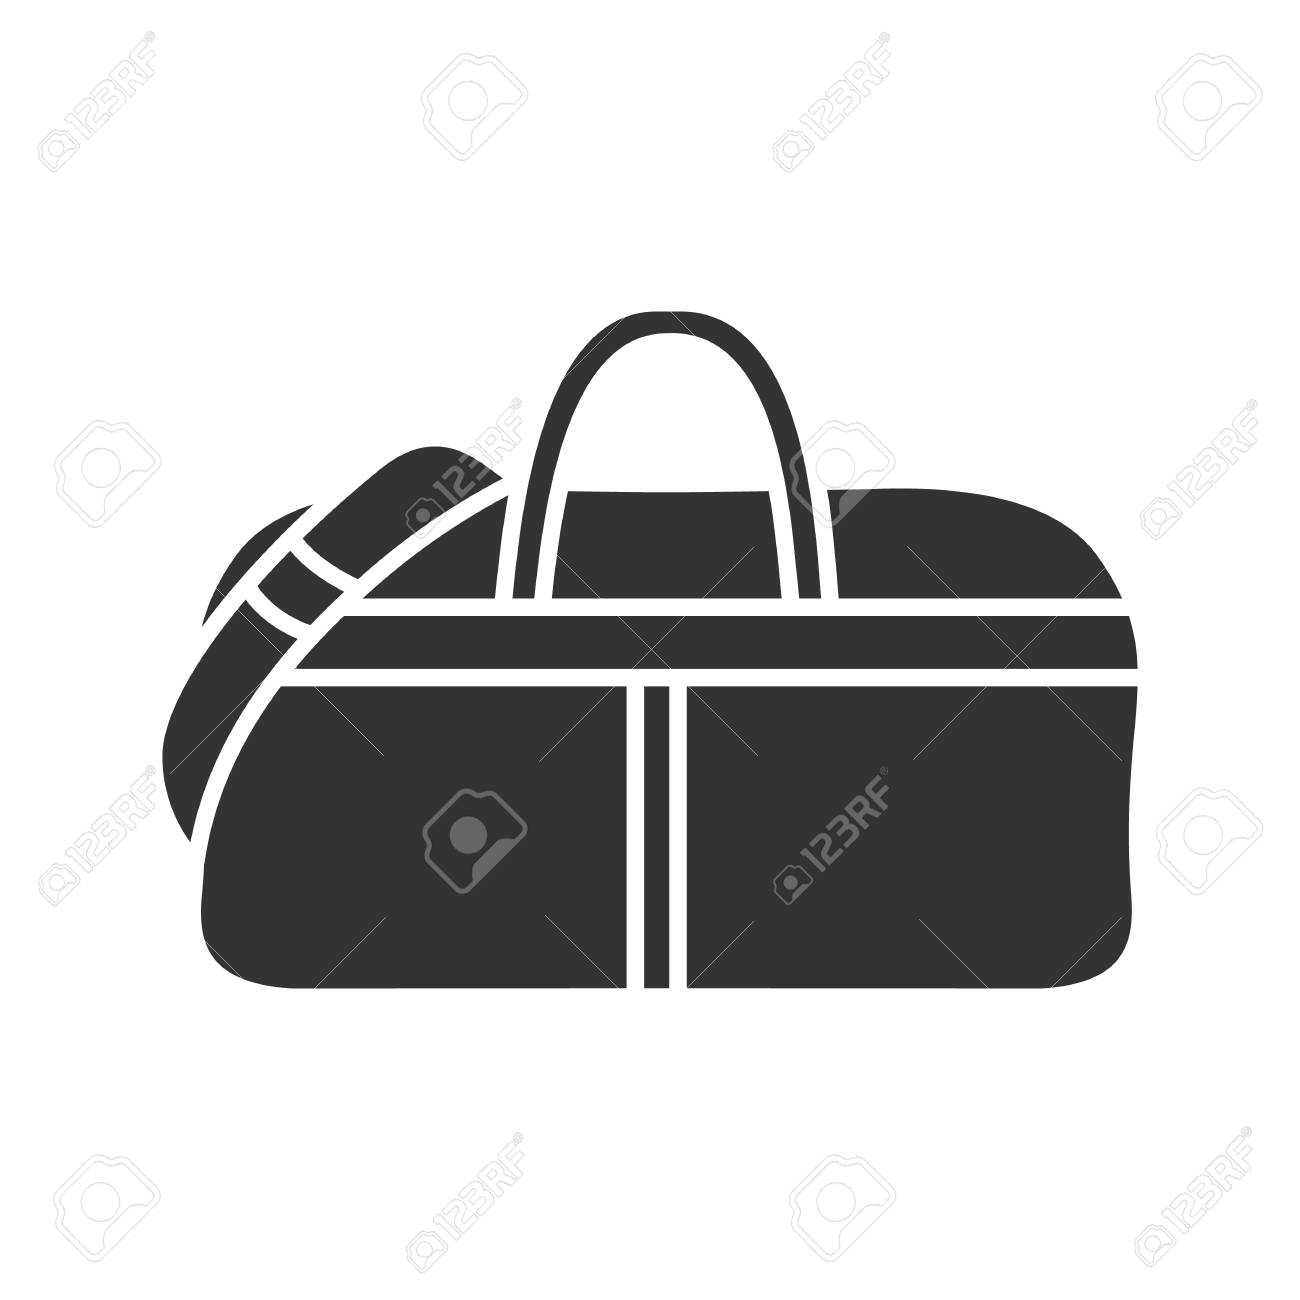 7c3c42d18b Sports bag glyph icon. Duffel handbag. Silhouette symbol. Negative space.  Vector isolated